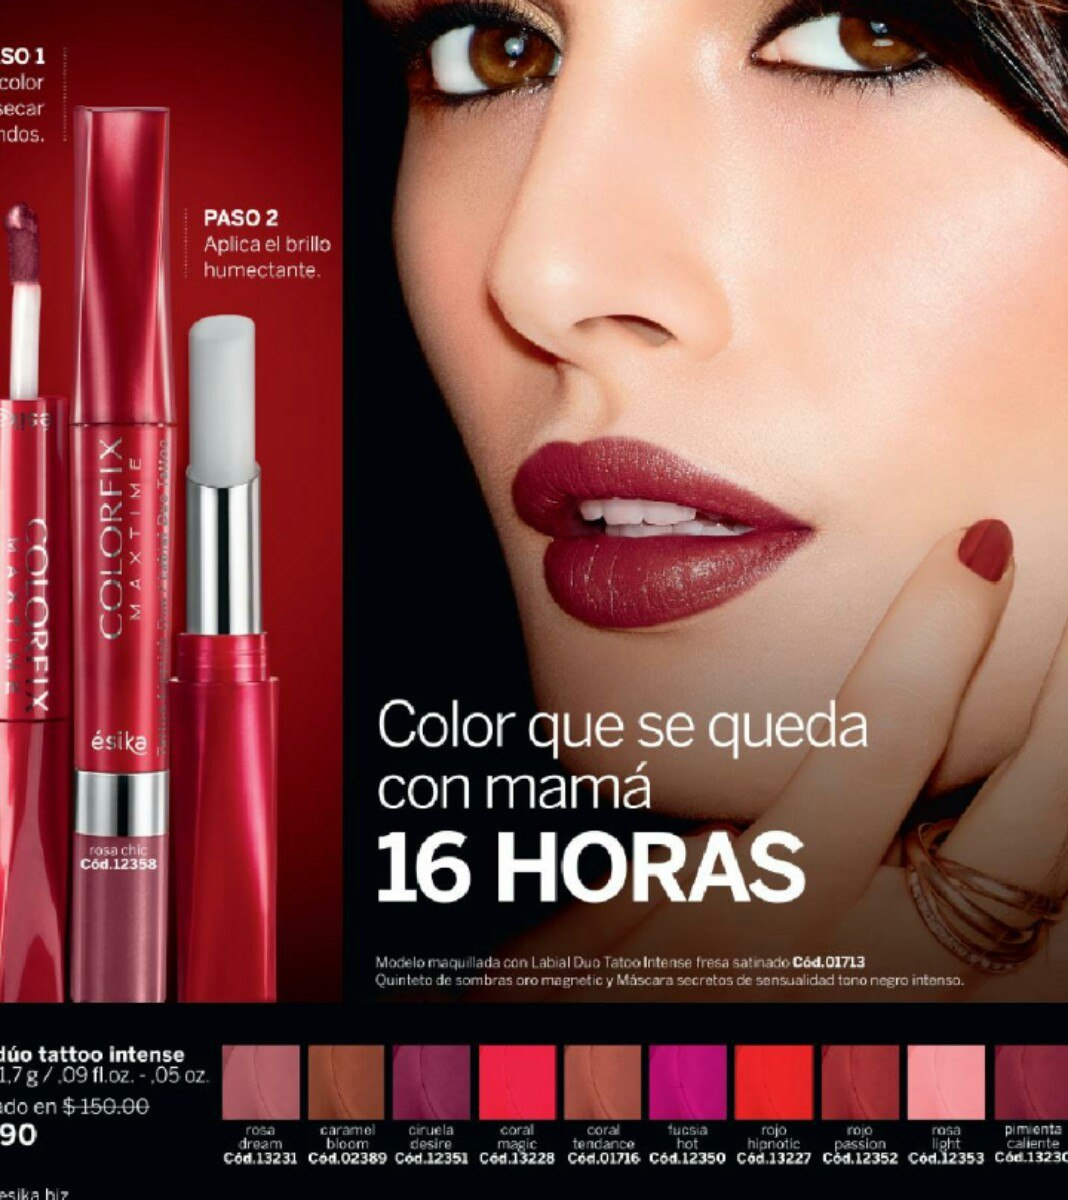 colorfix maxtime labial duo tatoo intense de esika 75